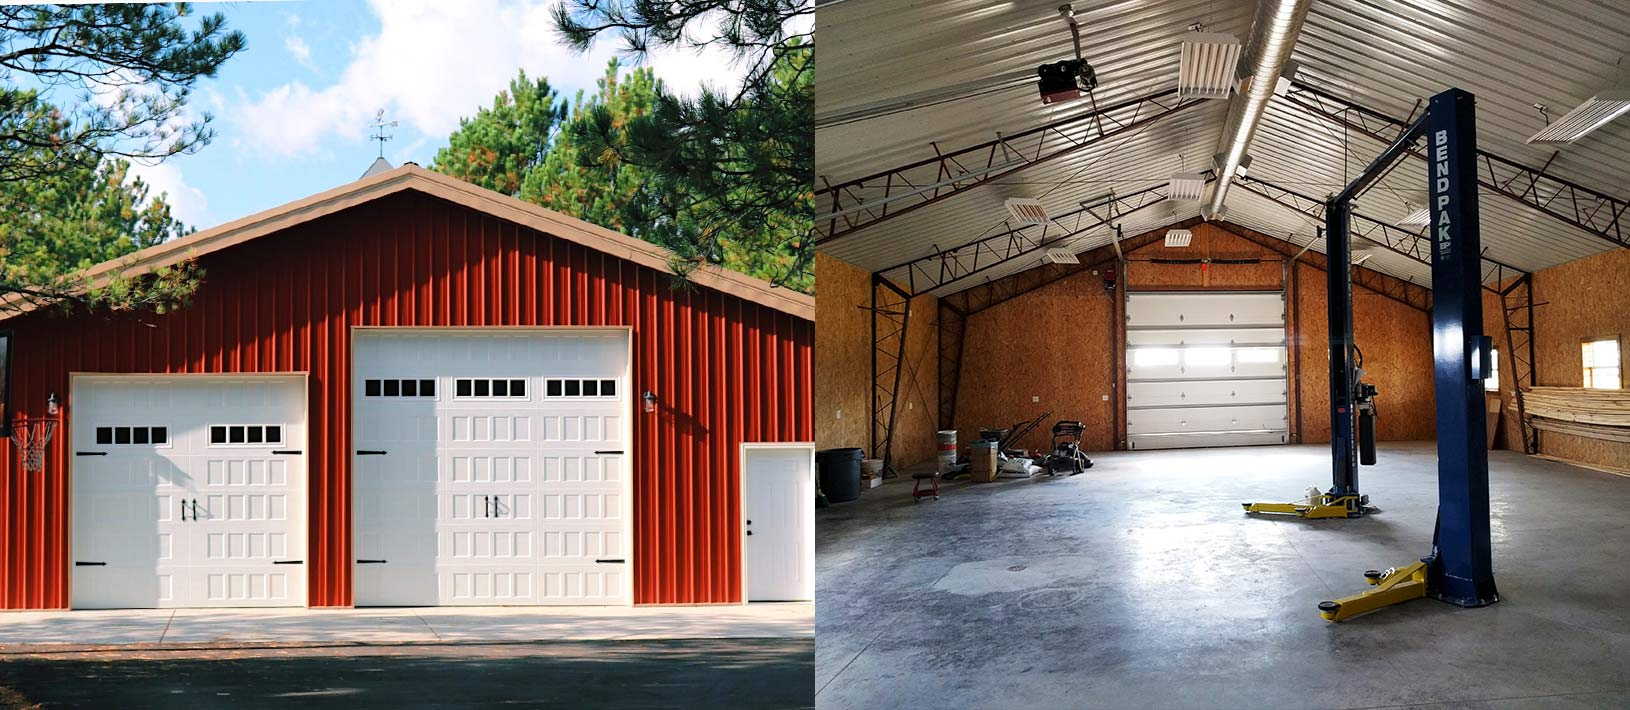 Garage Storage Buildings Worldwide Steel Buildings Metal Steel Buildings Barndominiums